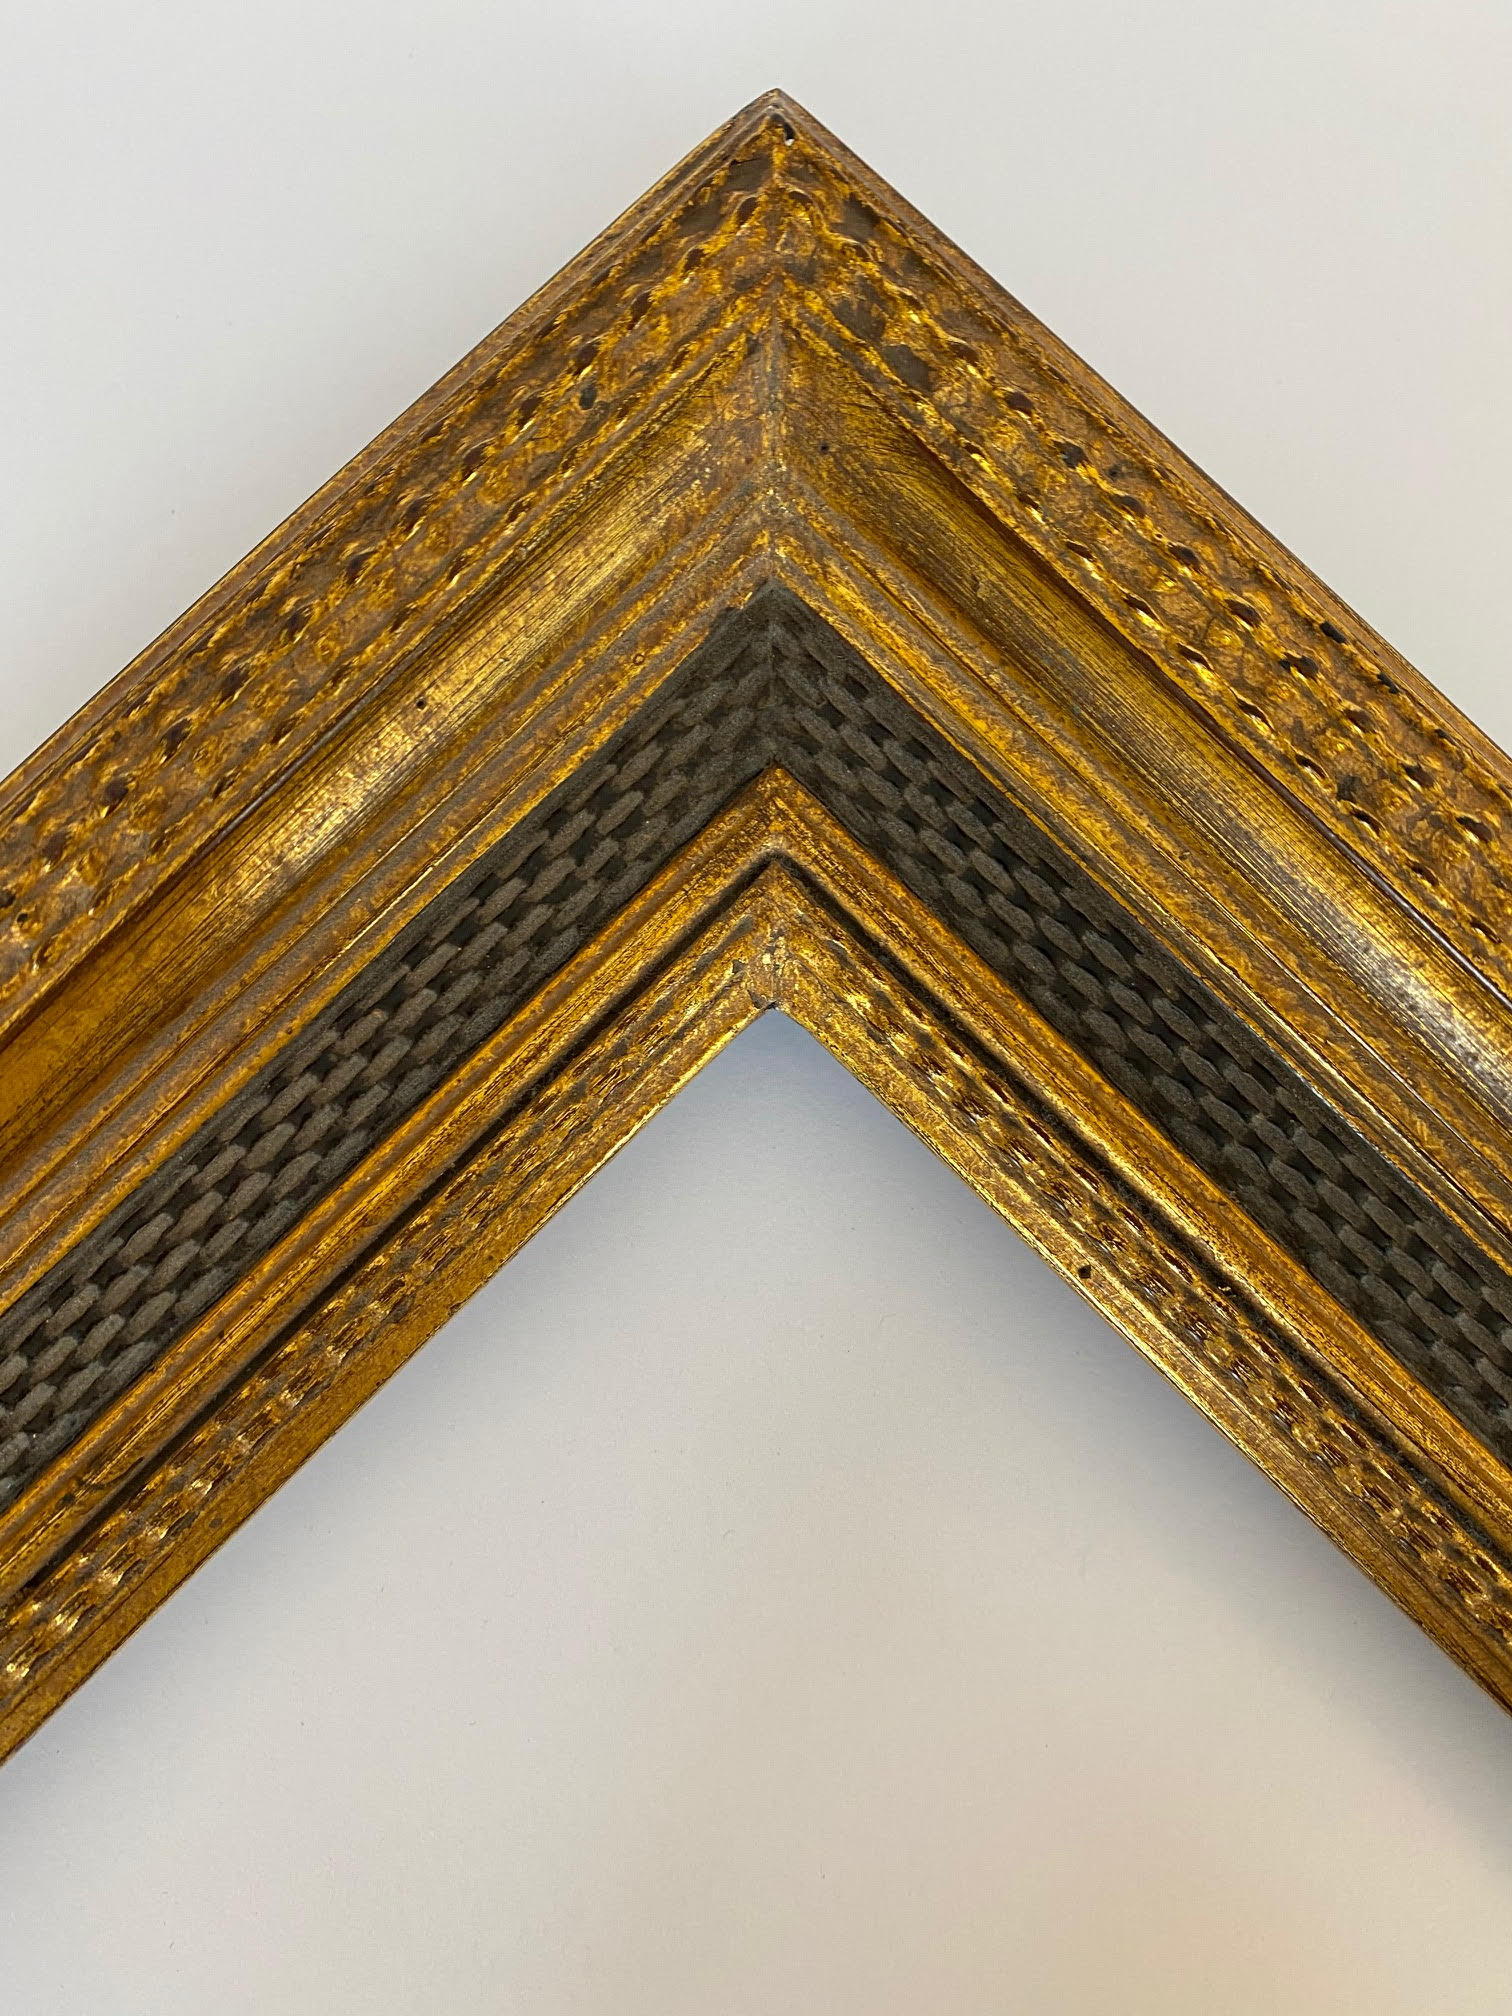 Prefinished length molding gold and black Dutch frame with basketweave pattern panel and rippled detail on lip and exterior edge Artifact services artmill Group Chicago